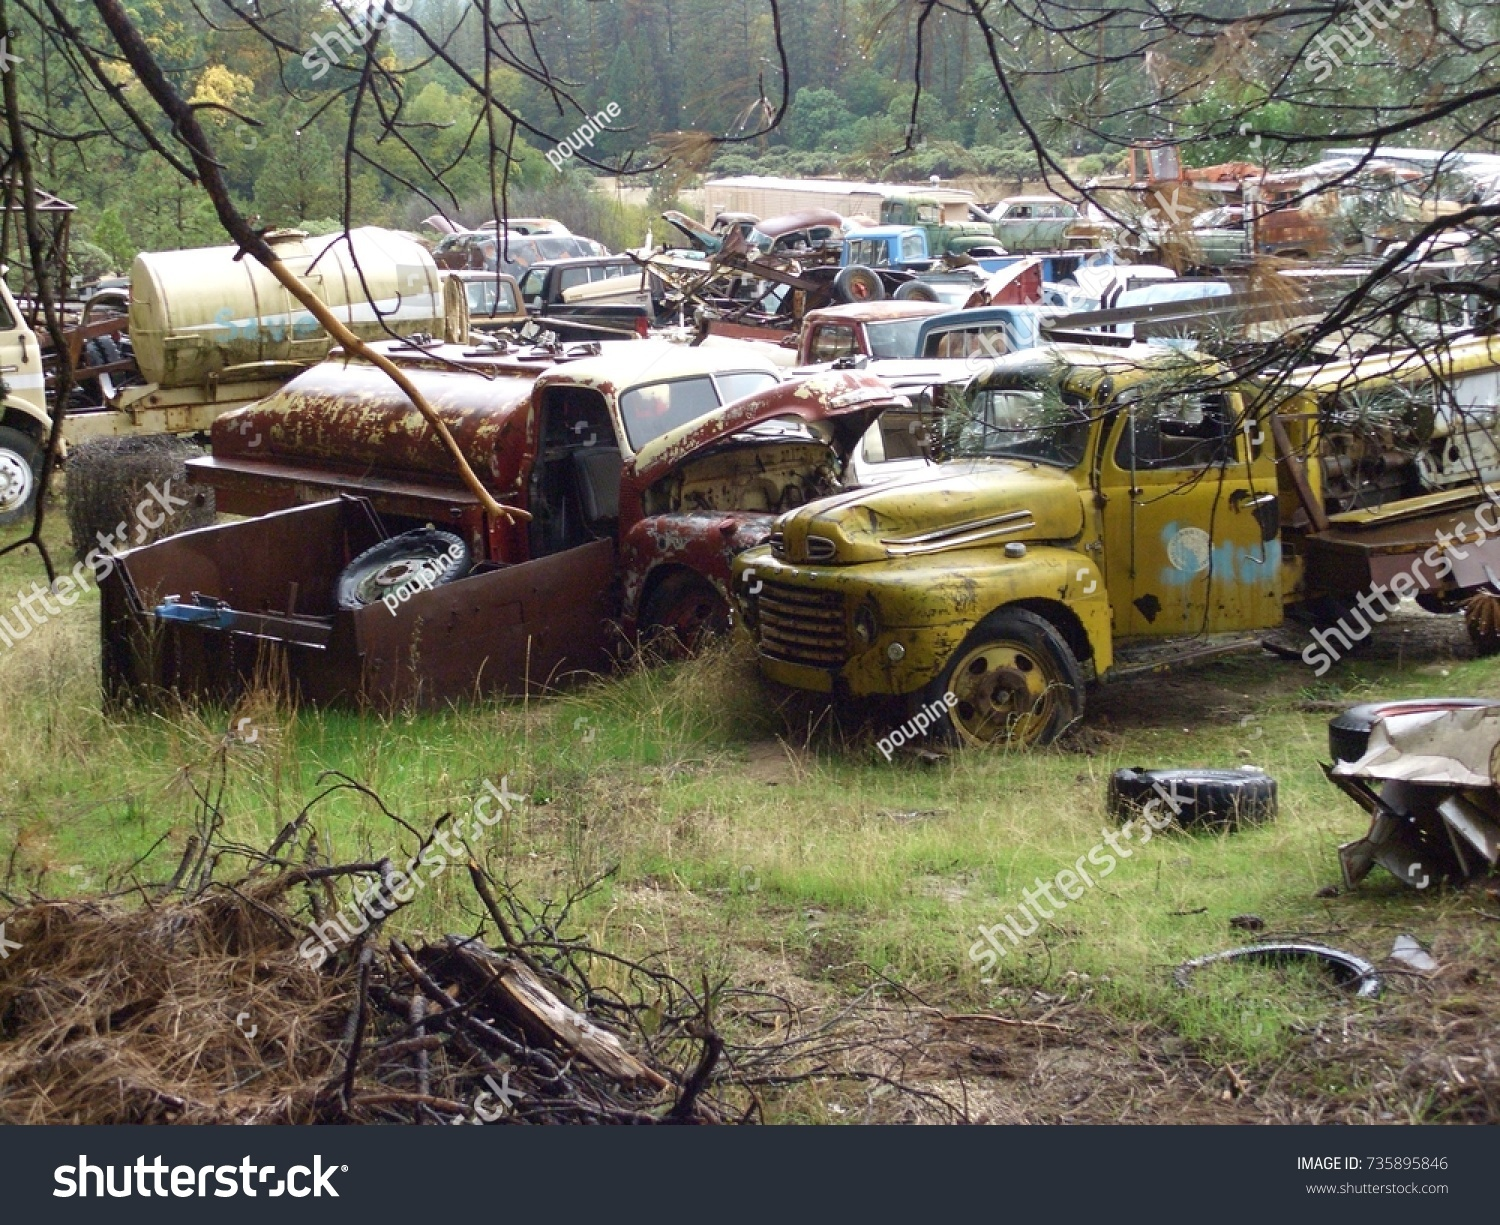 Abandoned Junkyard Vintage Cars Trucks Country Stock Photo (Royalty ...